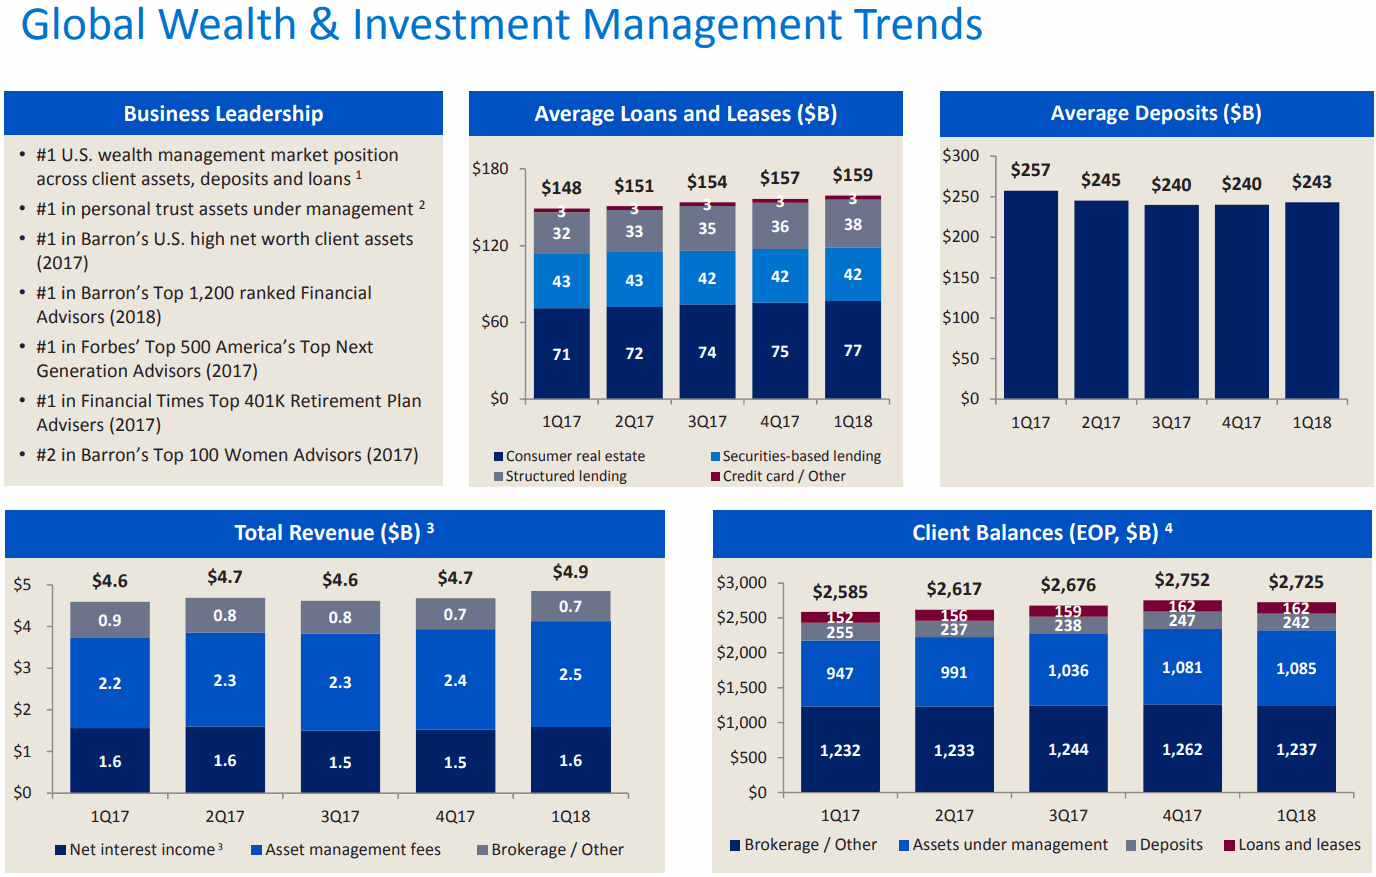 Bank-of-America-Global-Wealth-and-Investment-Management-Trends